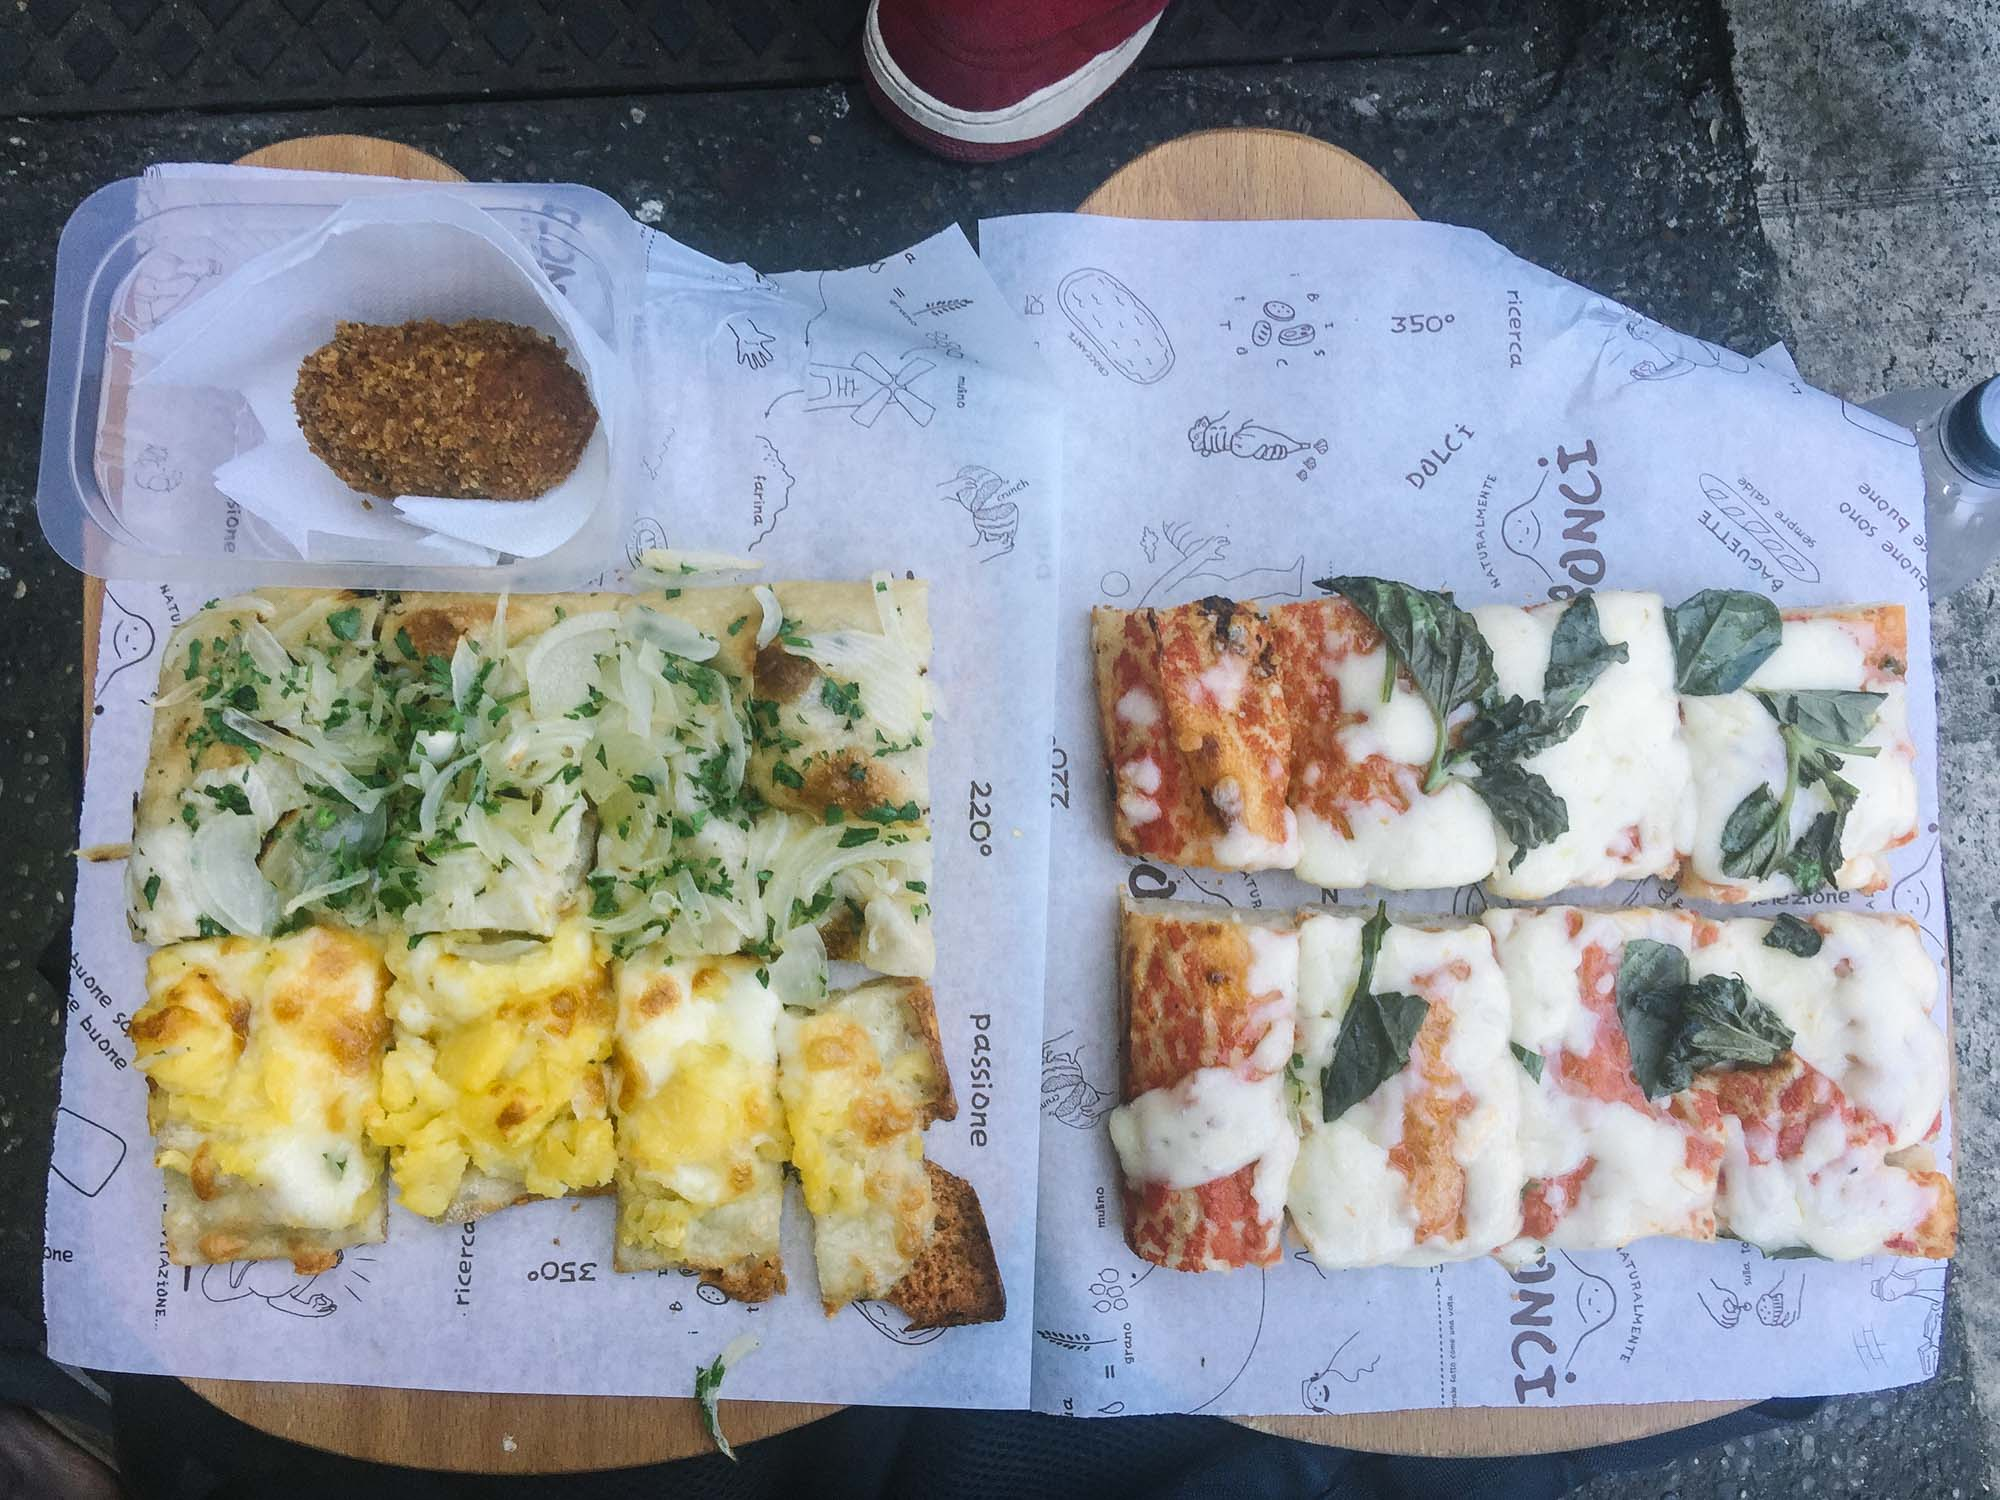 What food to avoid when pregnant in Italy?